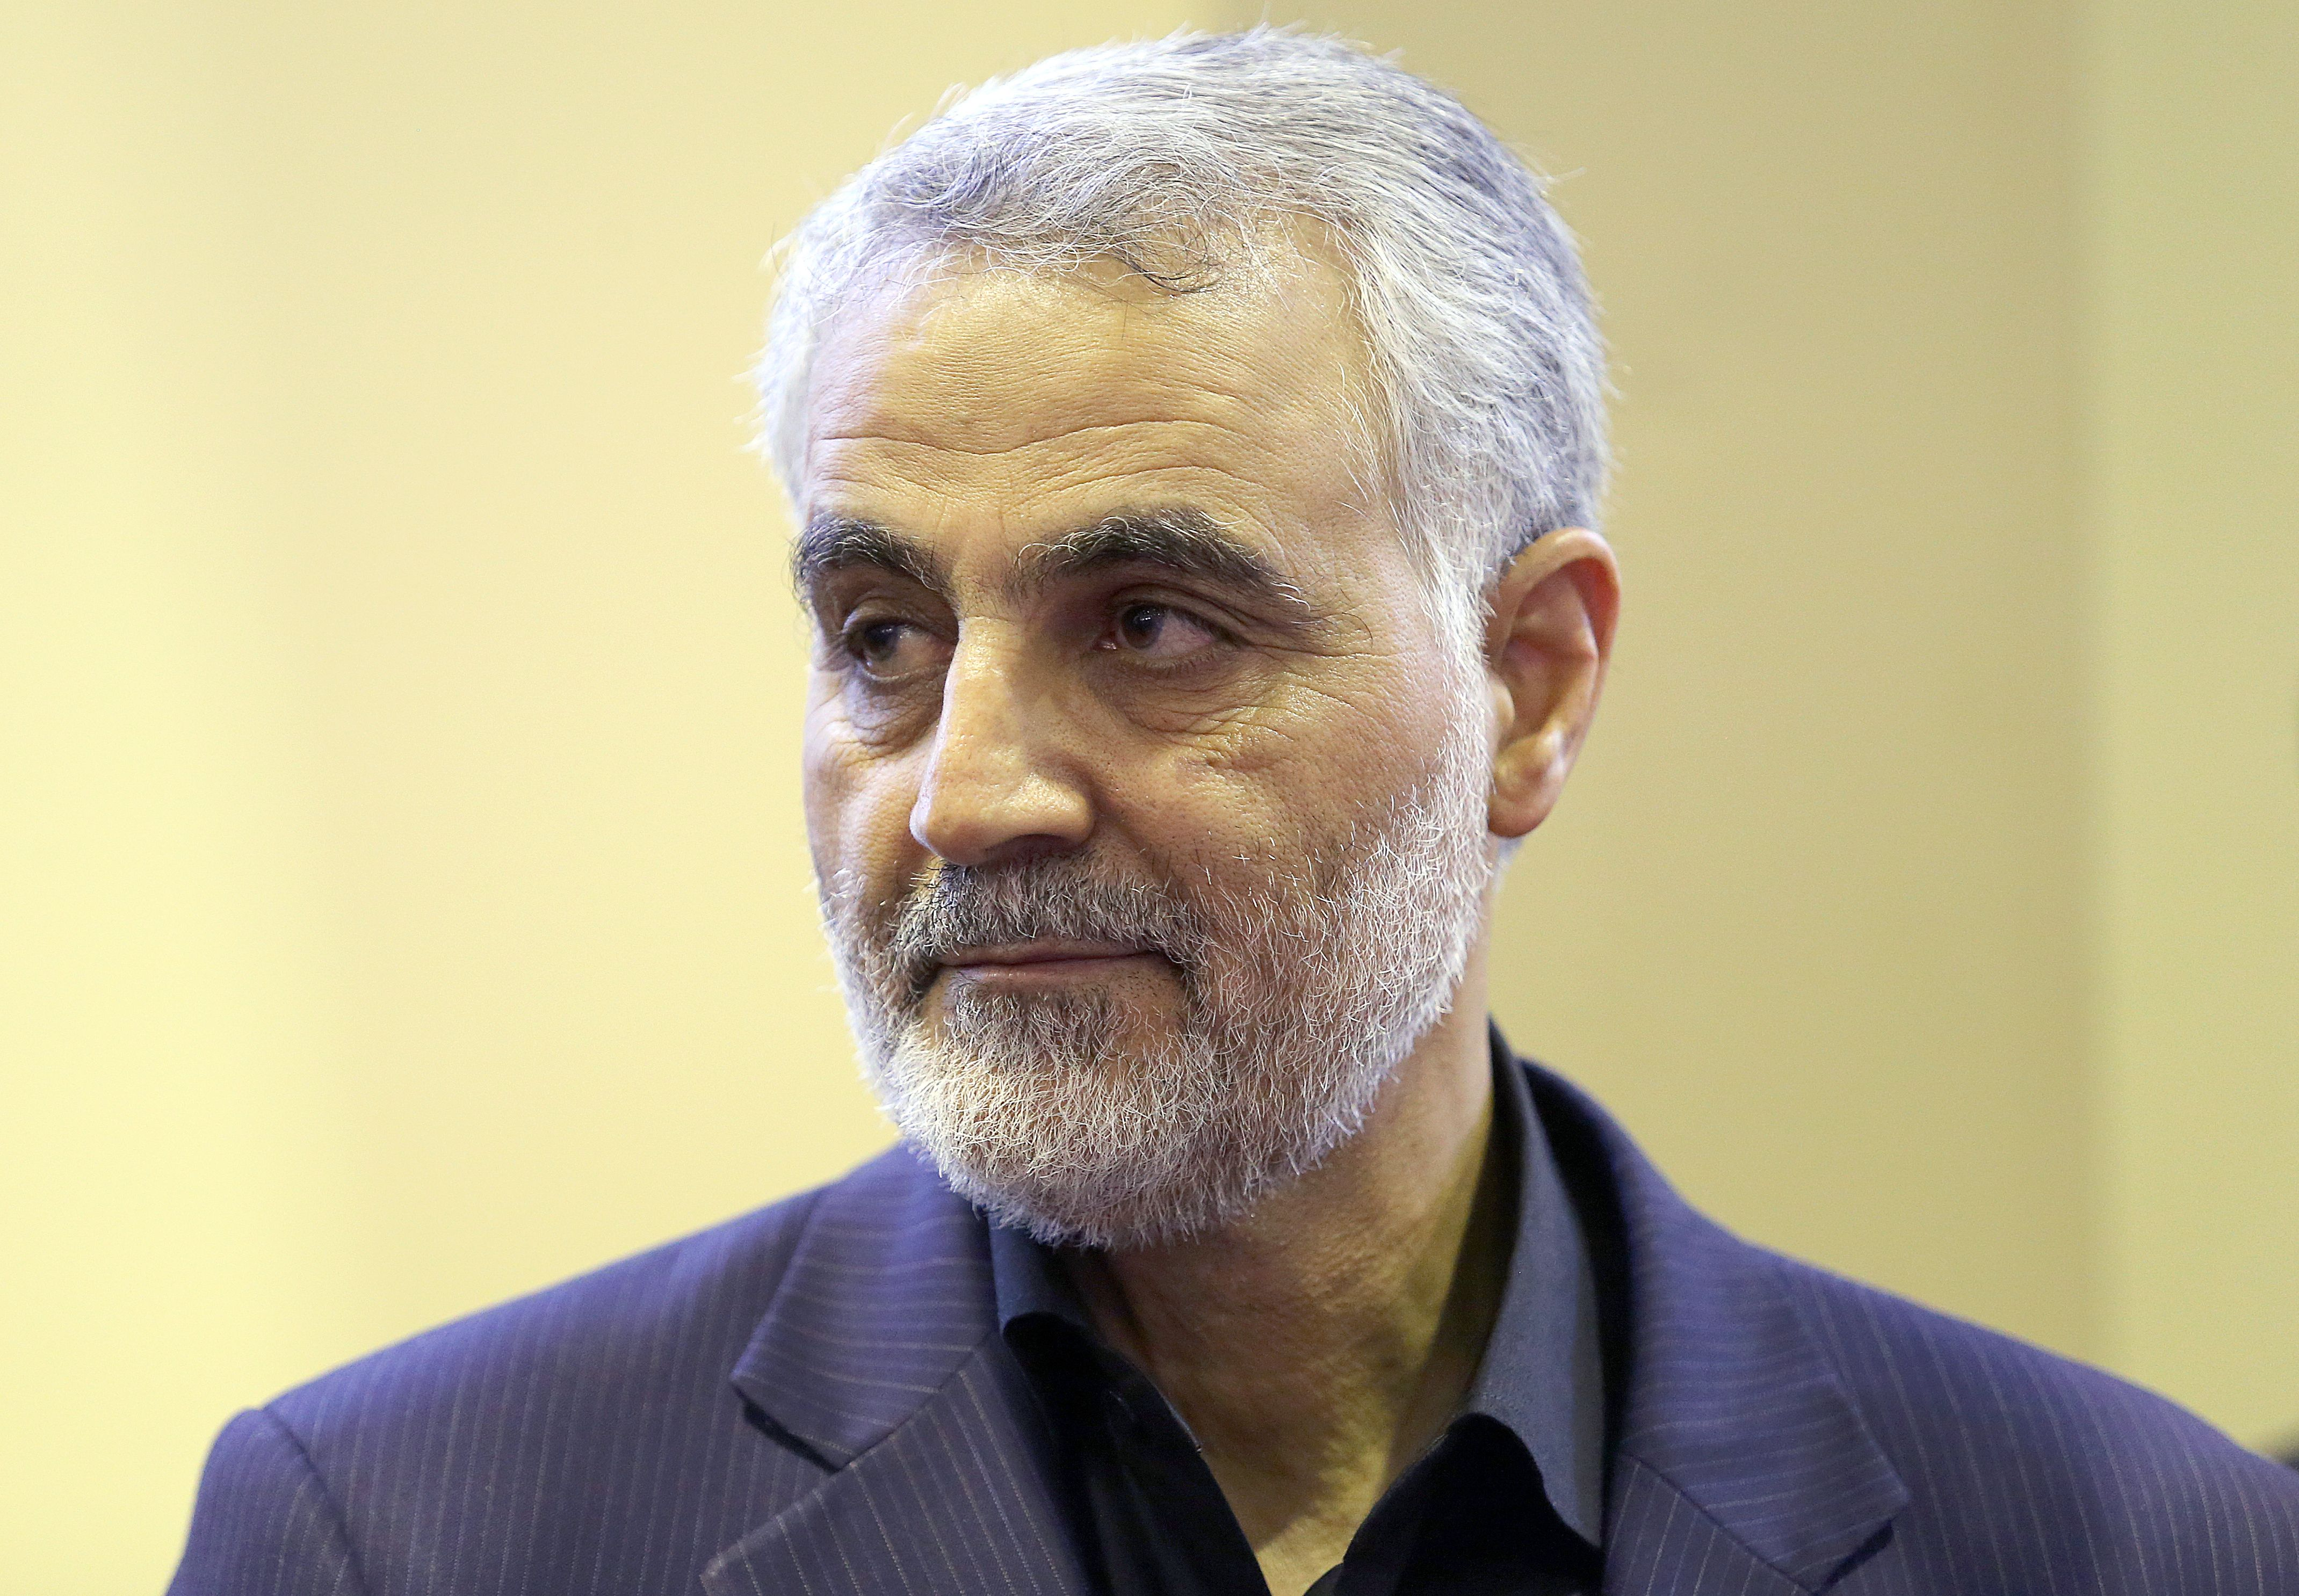 Qasem Soleimani, one of Iran's most powerful men, was killed in a US drone strike in Baghdad on Friday.